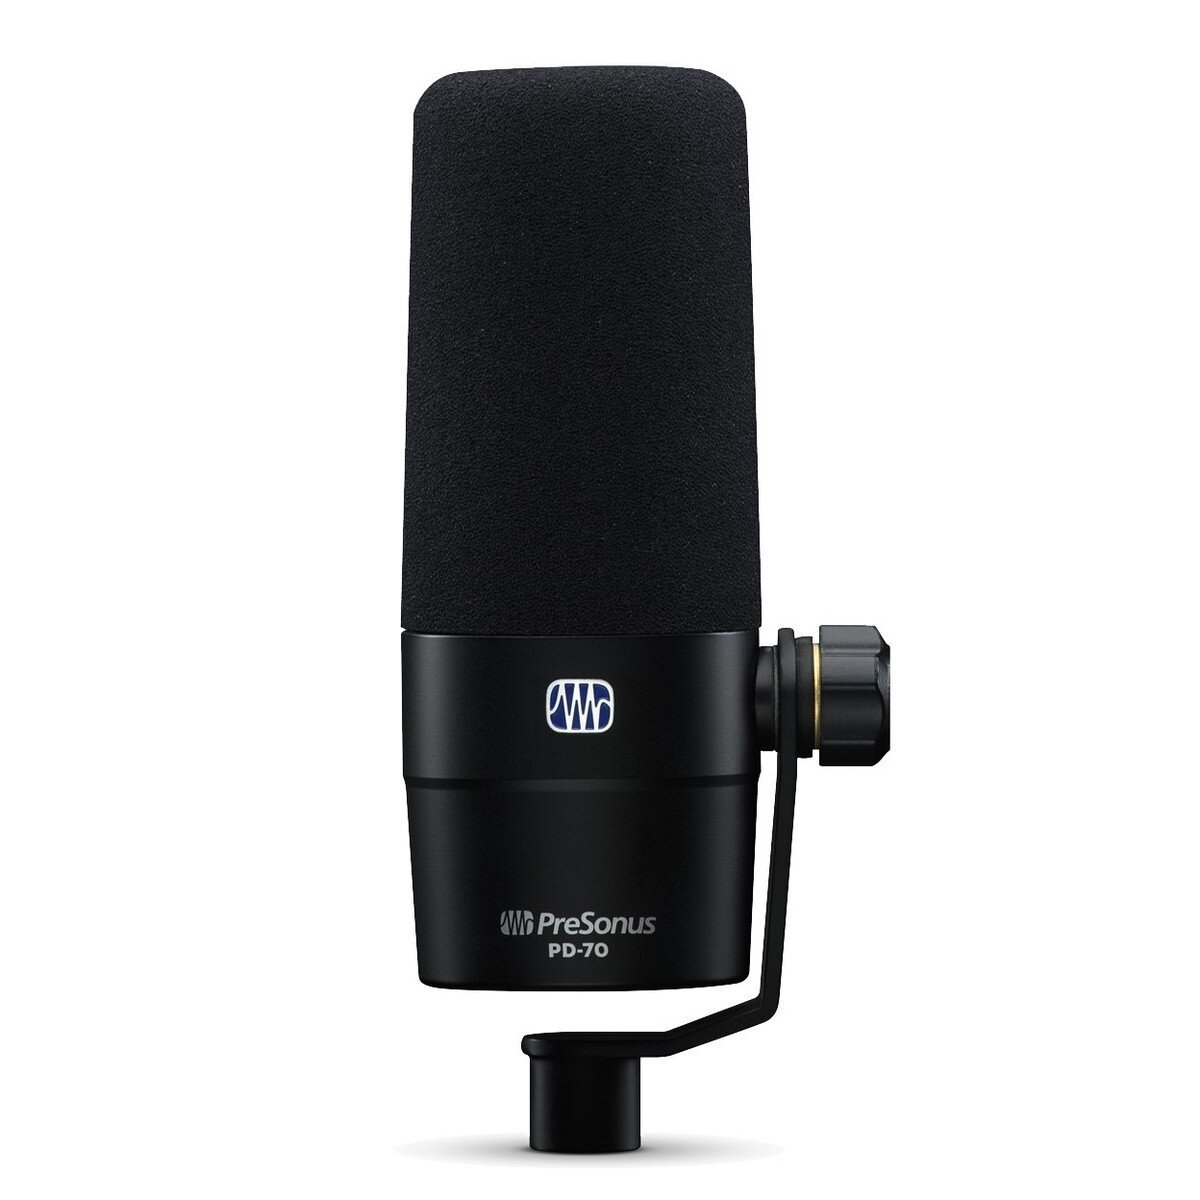 PreSonus PD-70  - Dynamic Vocal Microphone for Broadcast, Podcasting and Live Streaming